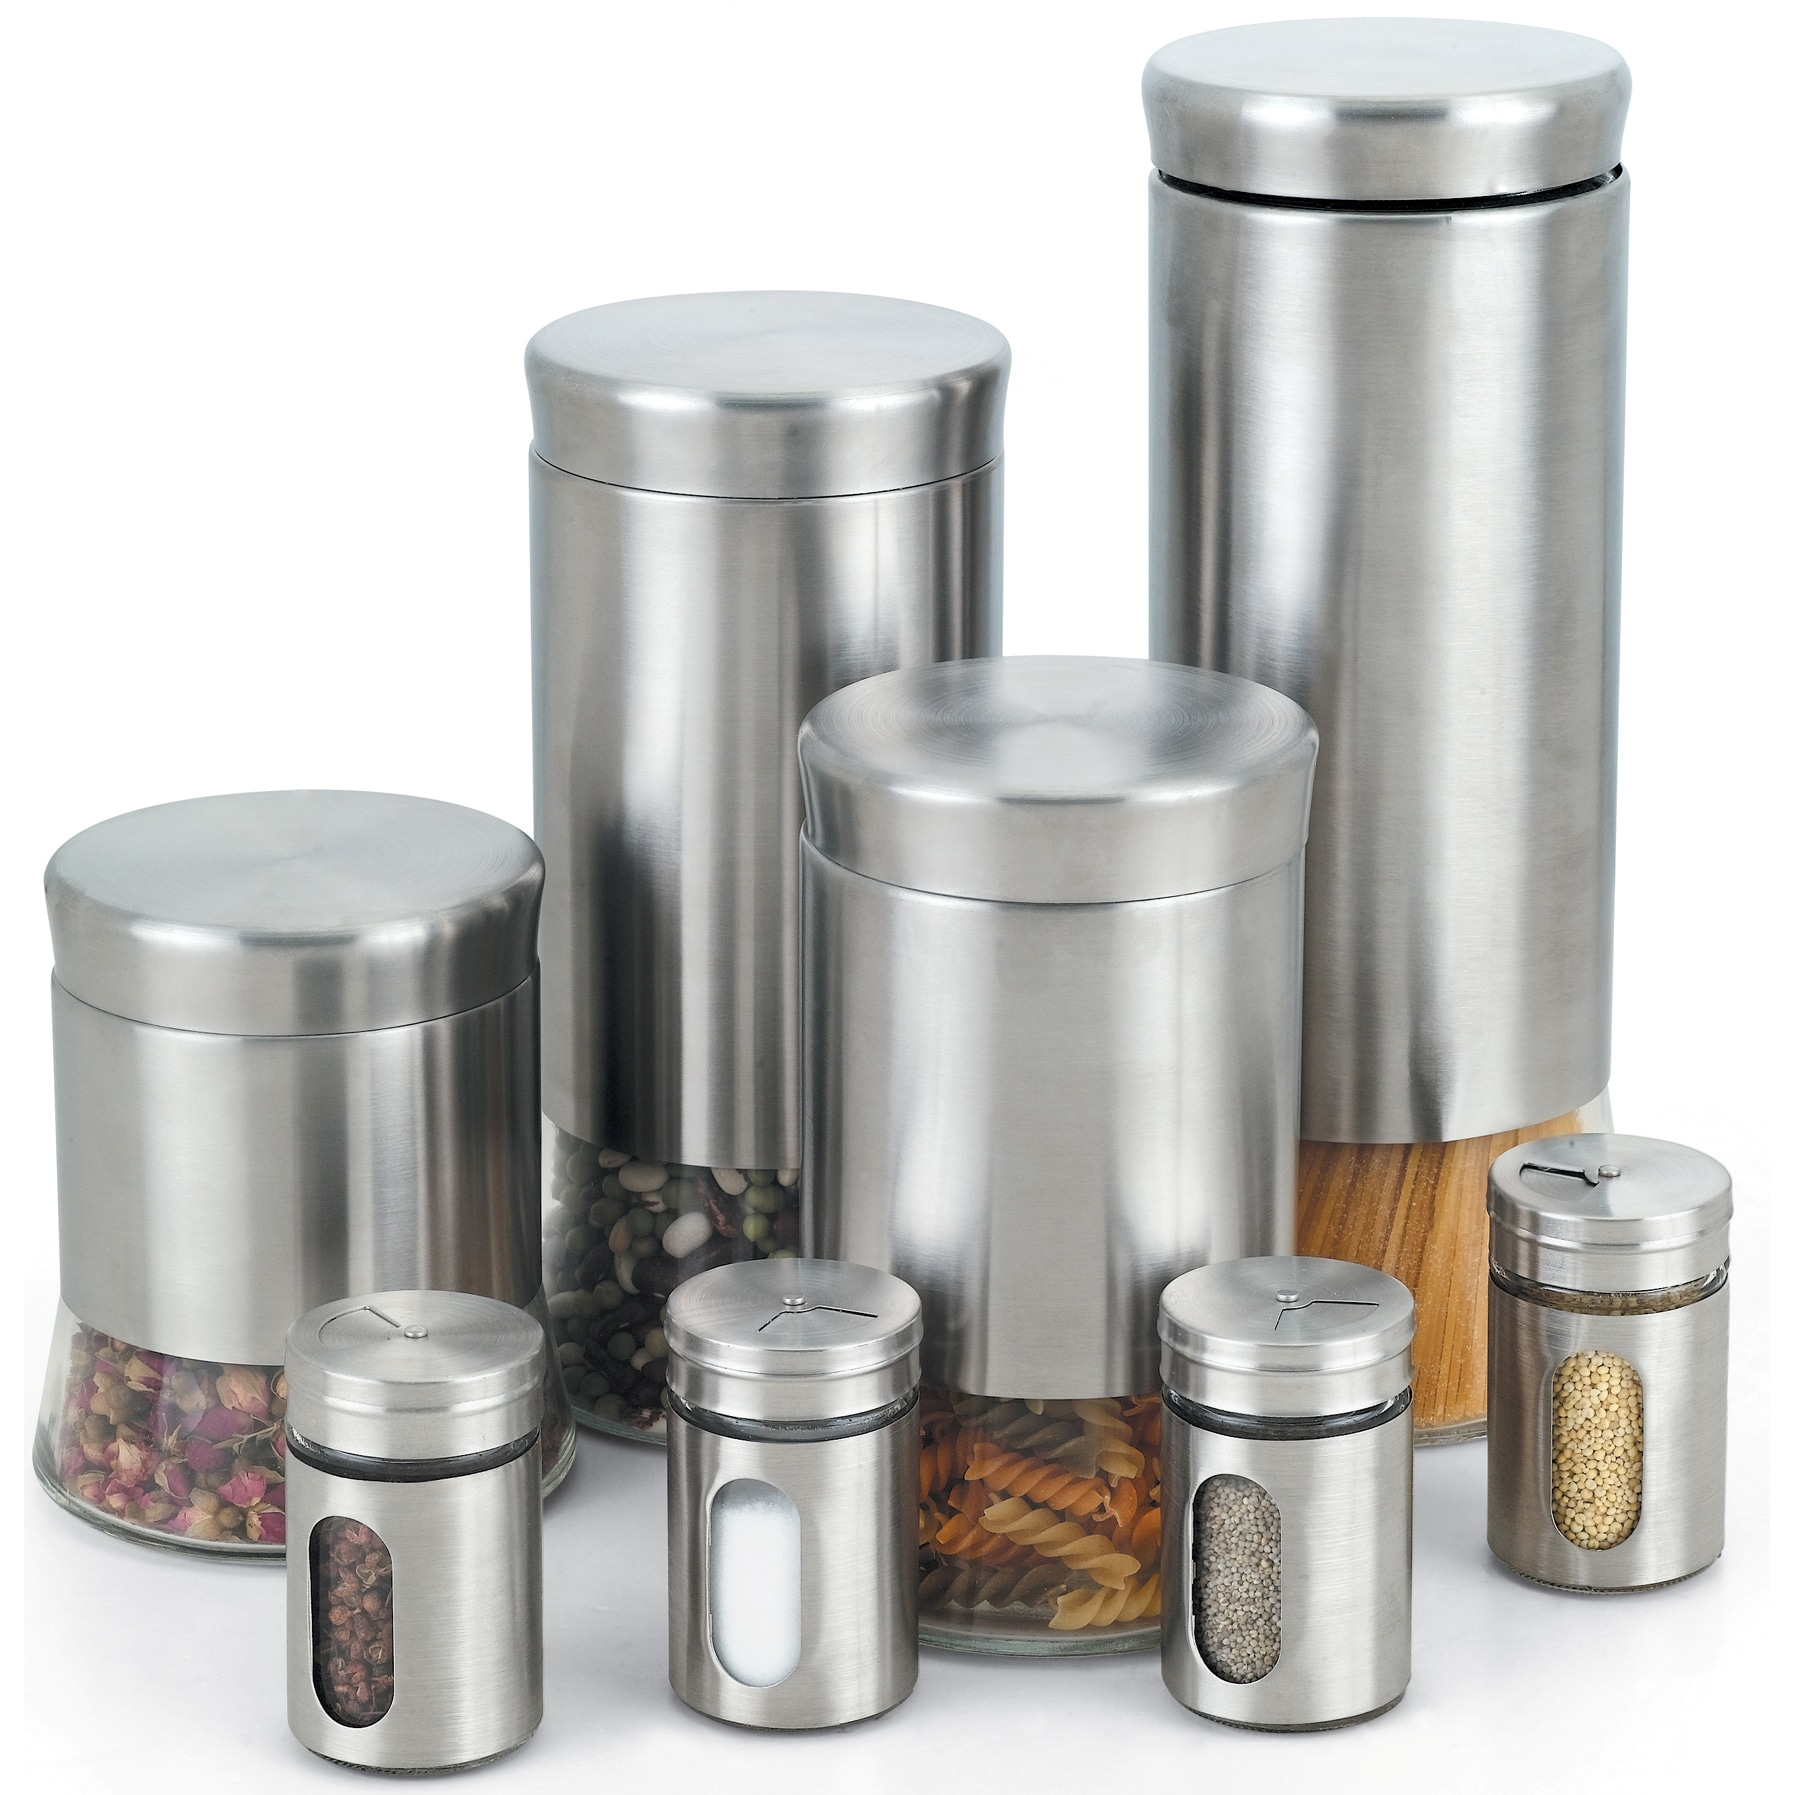 Shop Cook N Home 8 Piece Stainless Steel Canister and Spice Jar Set